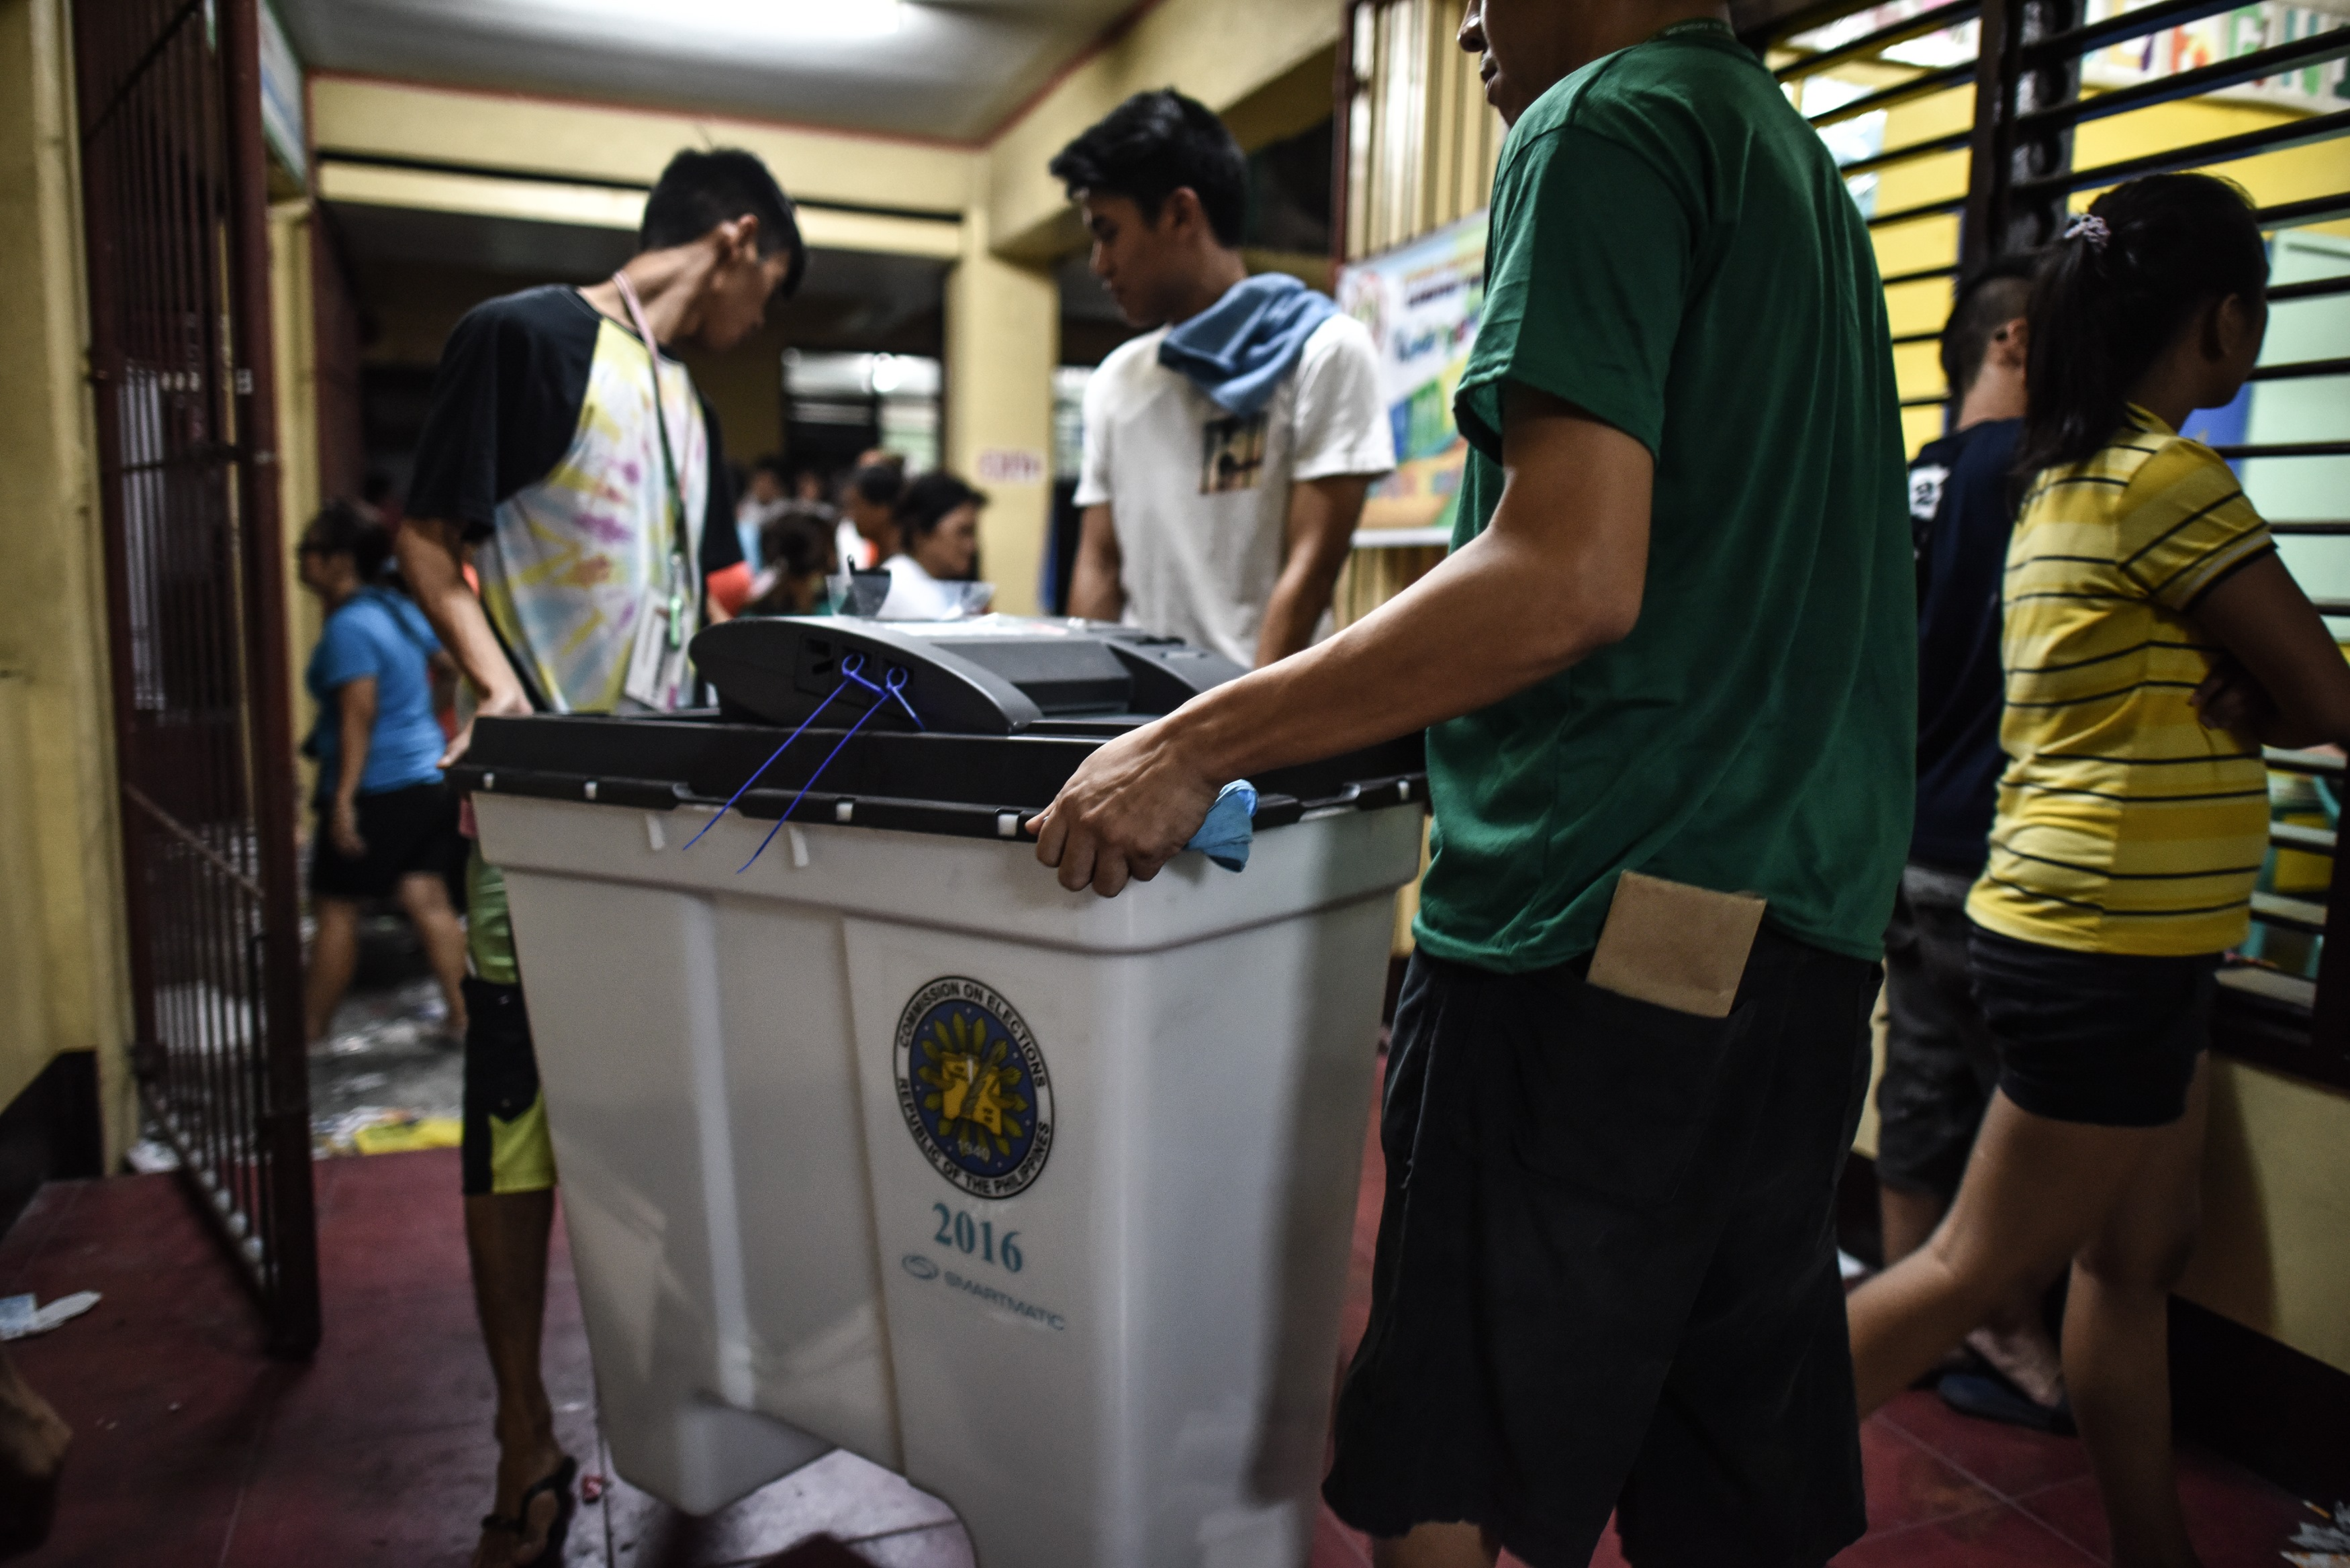 Polling officers carry a vote counting machine after polls closed in the presidential election in Manila on May 9, 2016./ AFP PHOTO / MOHD RASFAN